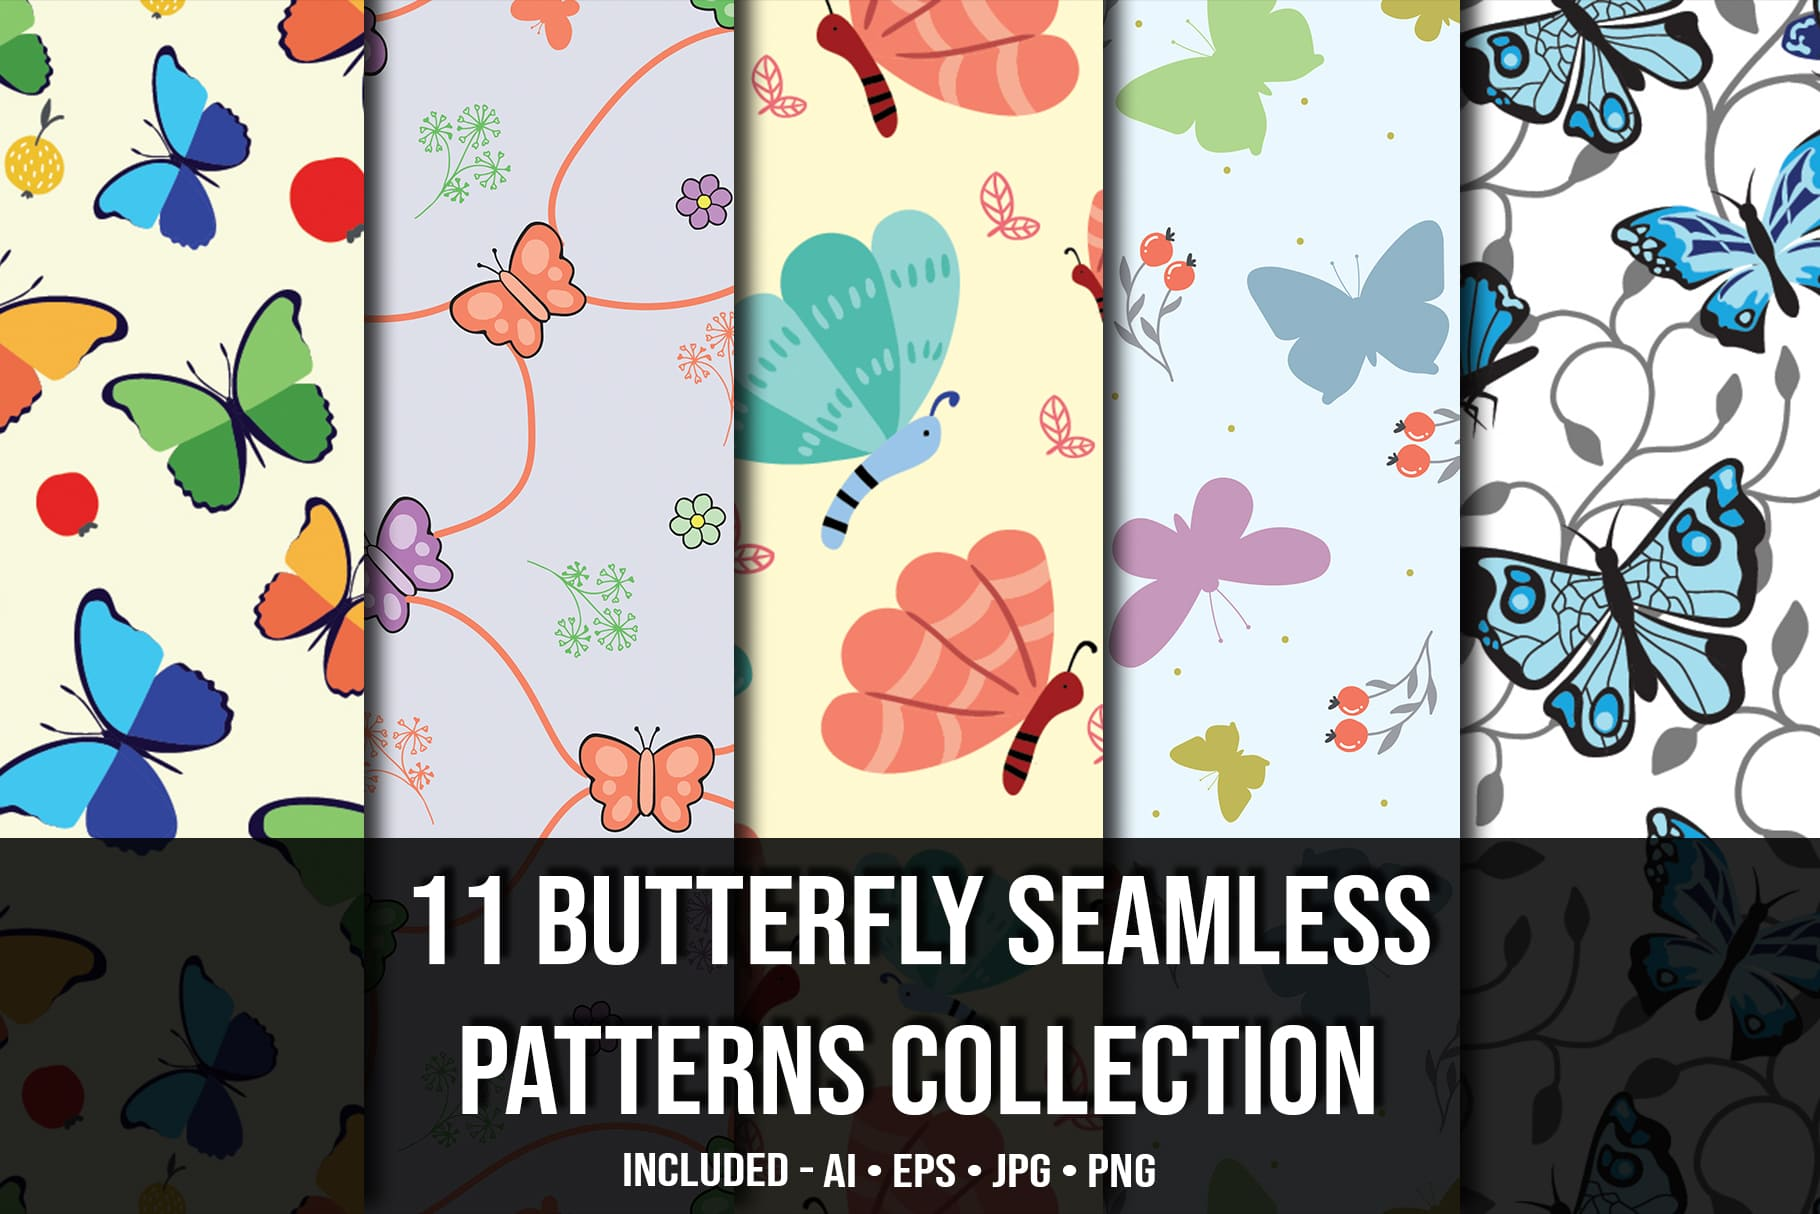 Main image.Butterfly Seamless Patterns Collection.